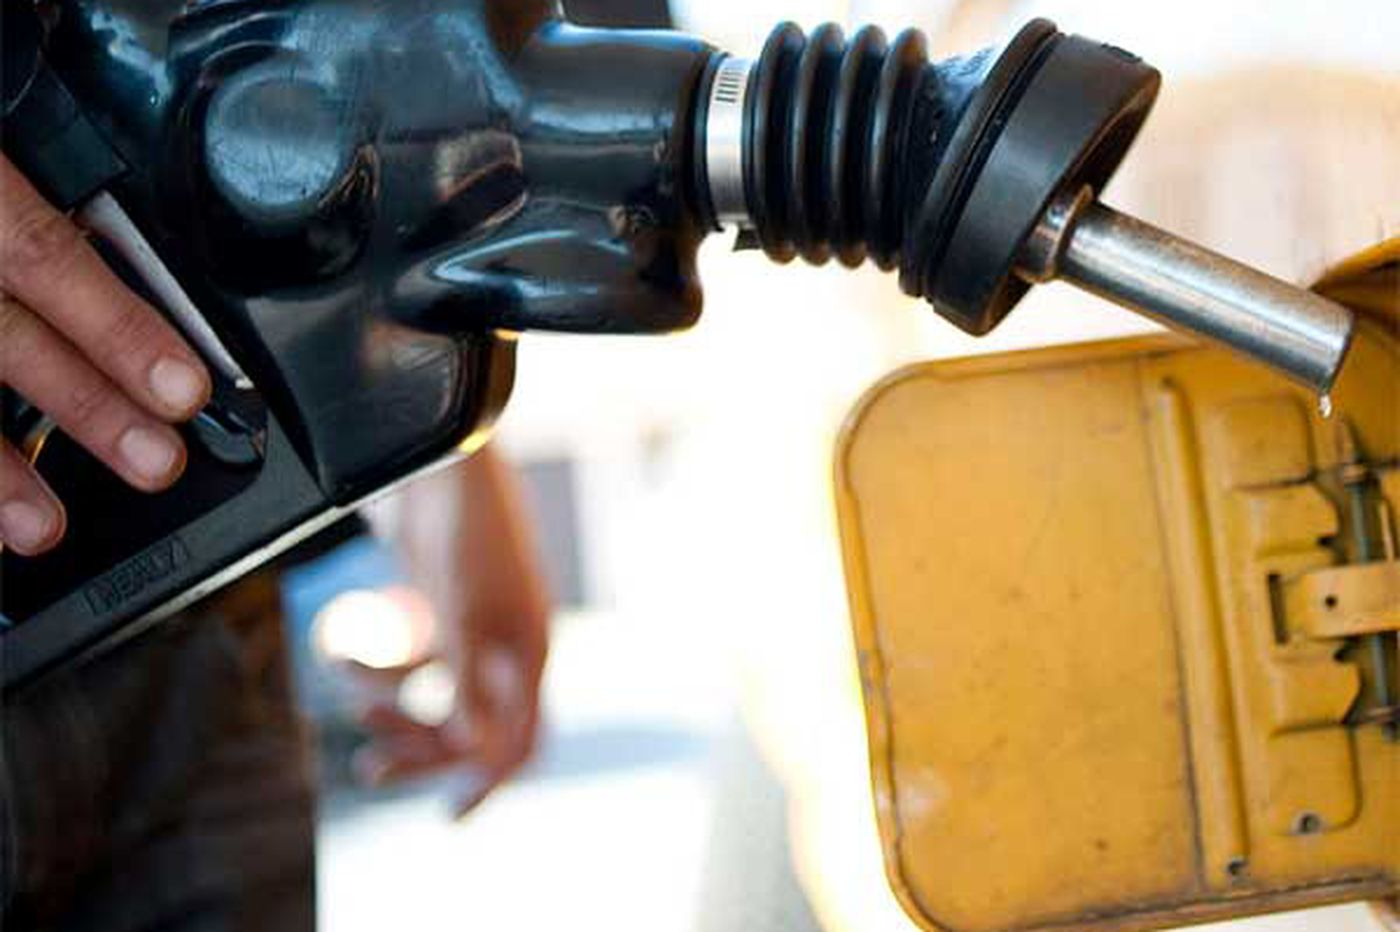 Pa. drives one step closer to higher gas prices